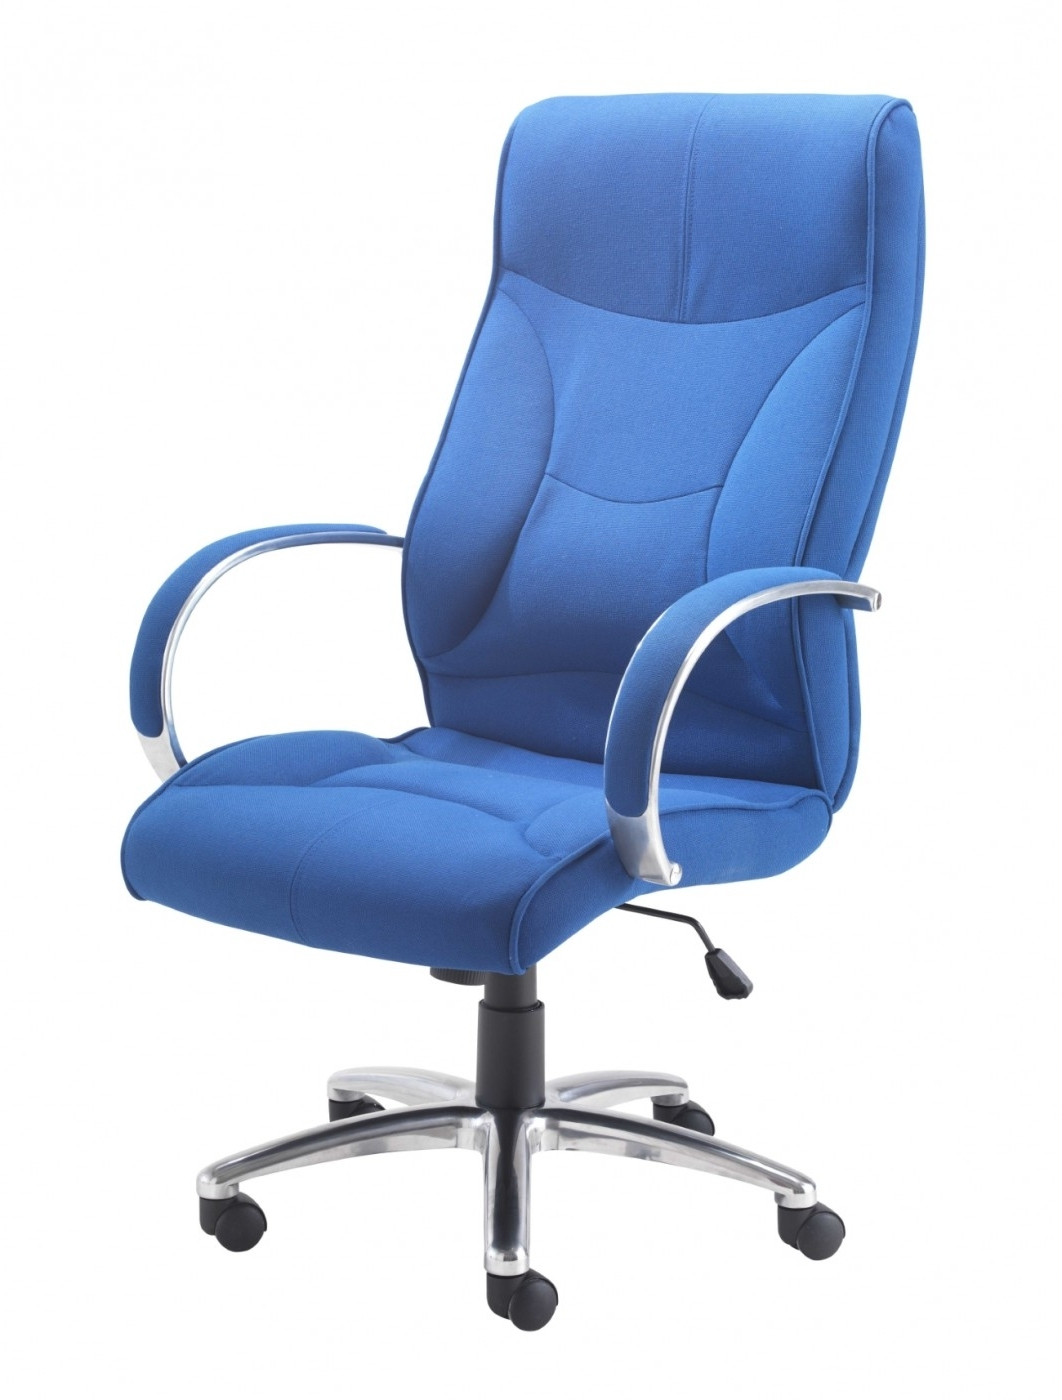 Office Chairs – Tc Whist Executive Fabric Office Chair Ch3206 In Most Recent Fabric Executive Office Chairs (View 17 of 20)